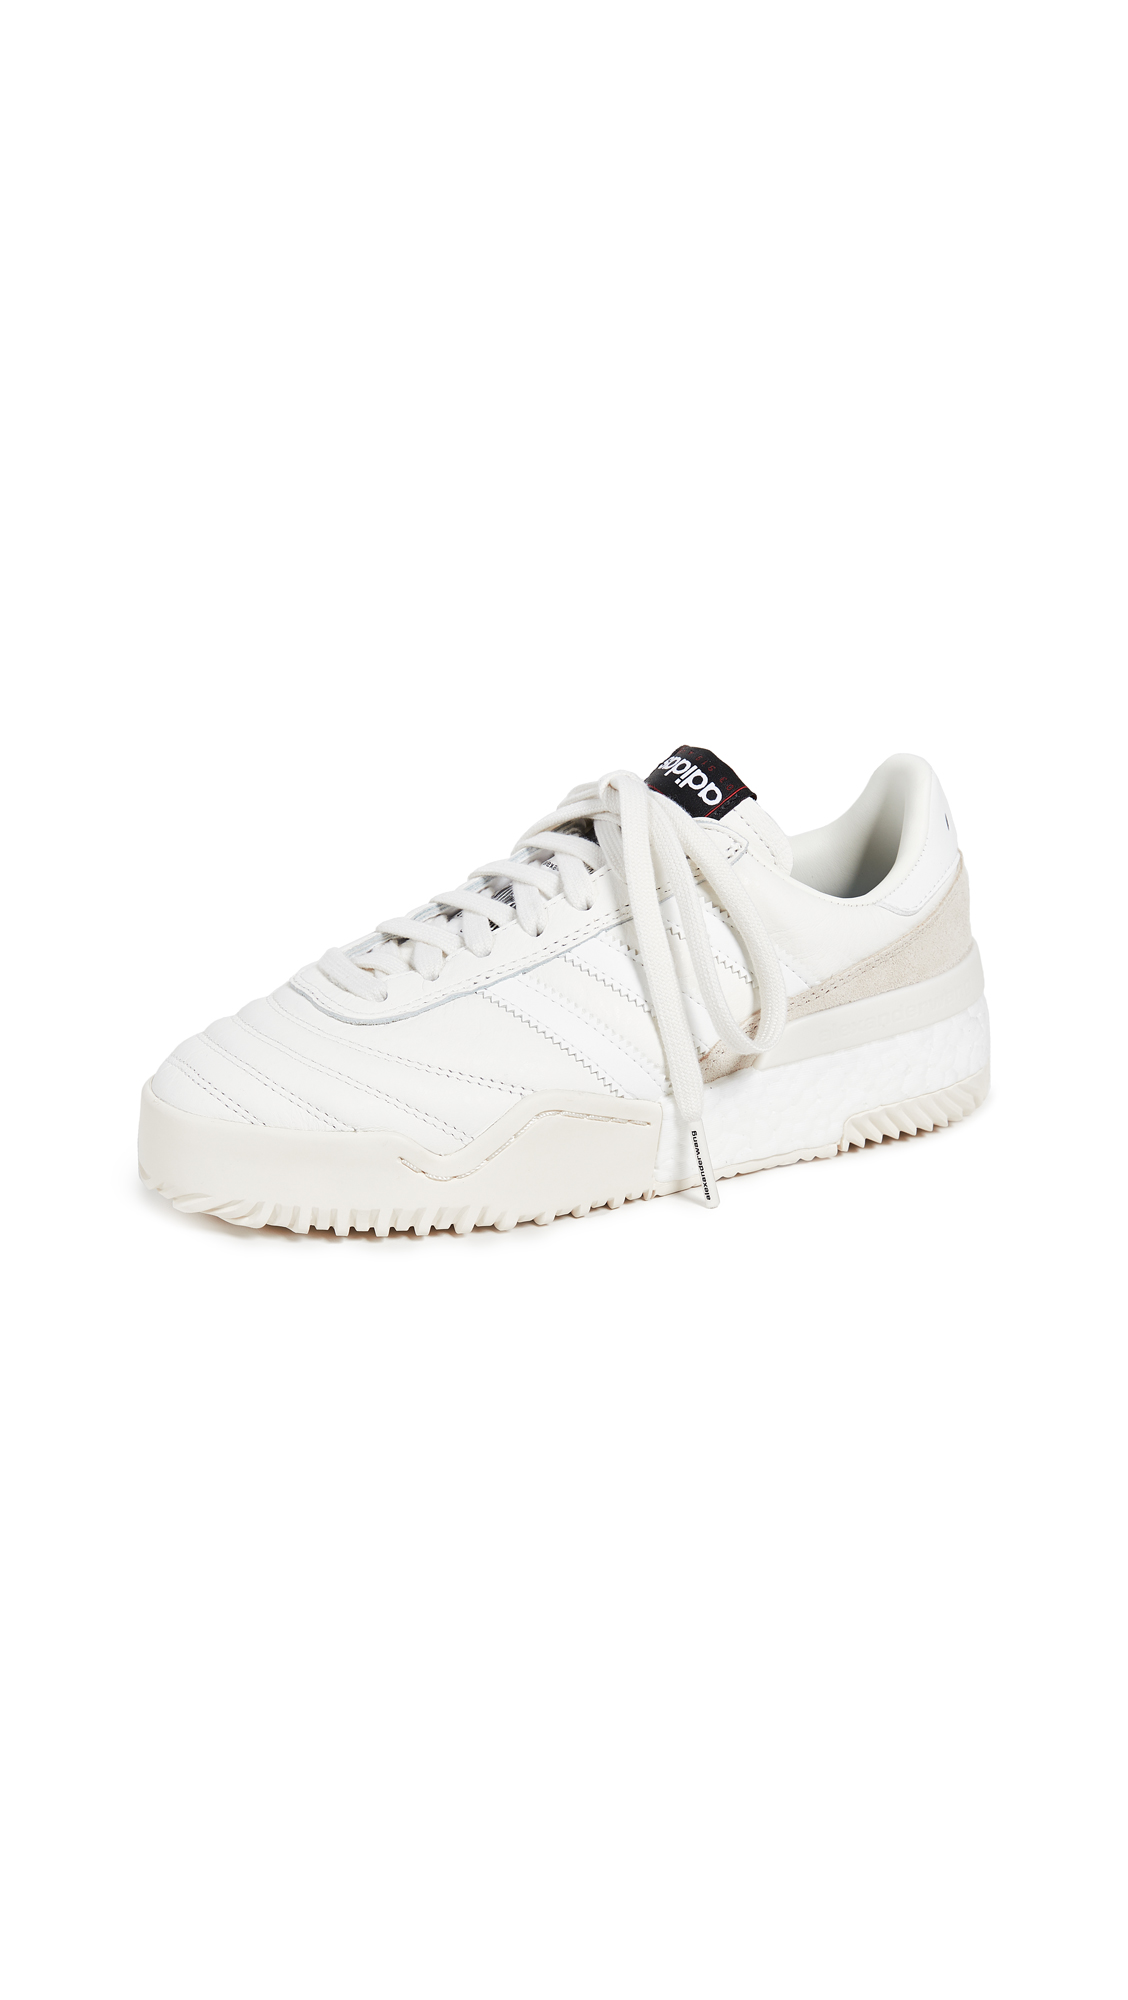 adidas Originals by Alexander Wang AW Soccer Bbal Sneakers - Cwhite/Cwhite/Cbrown